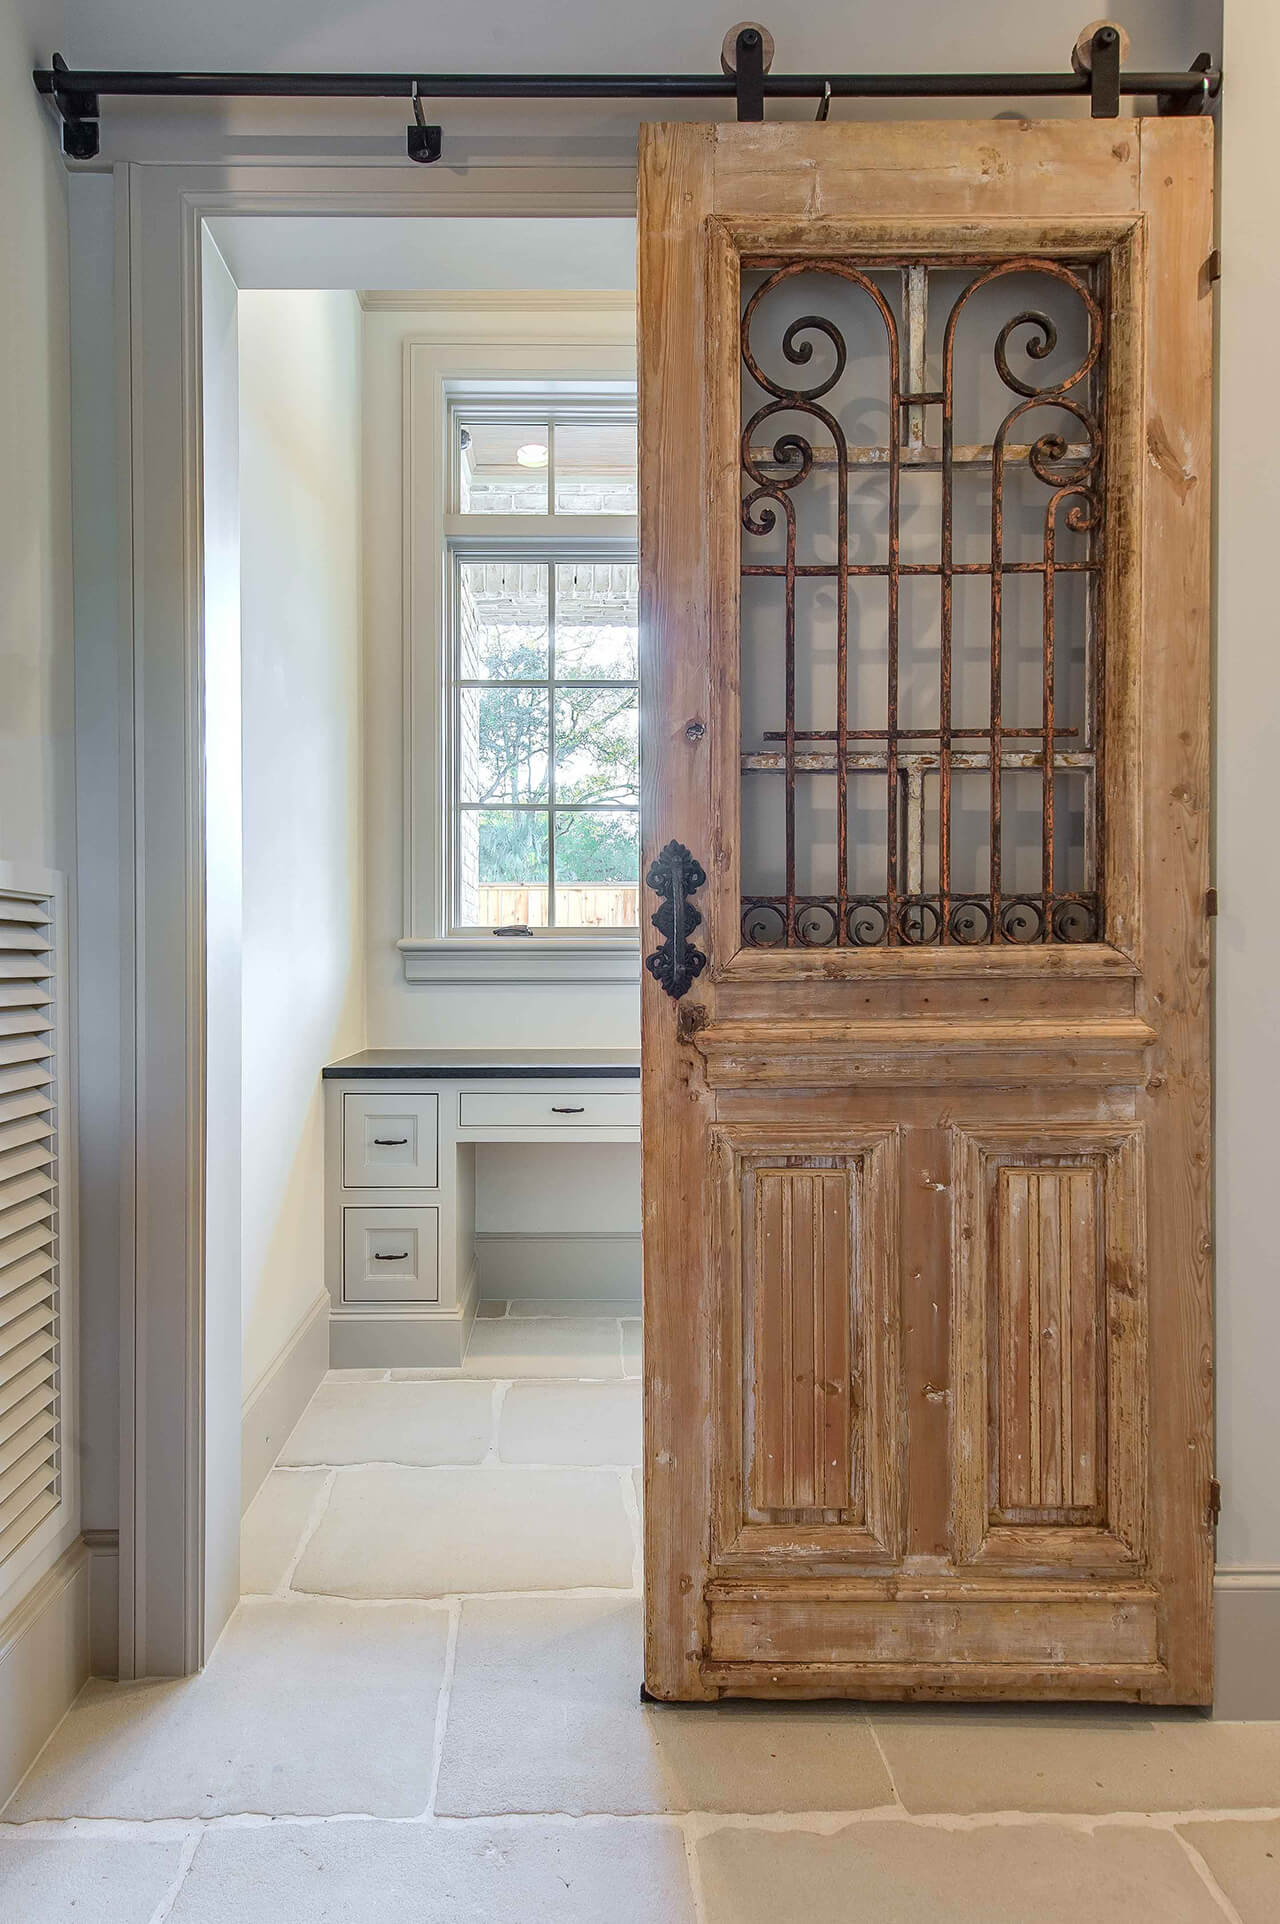 New takes on old doors 21 ideas how to repurpose old - Puertas de interior antiguas ...